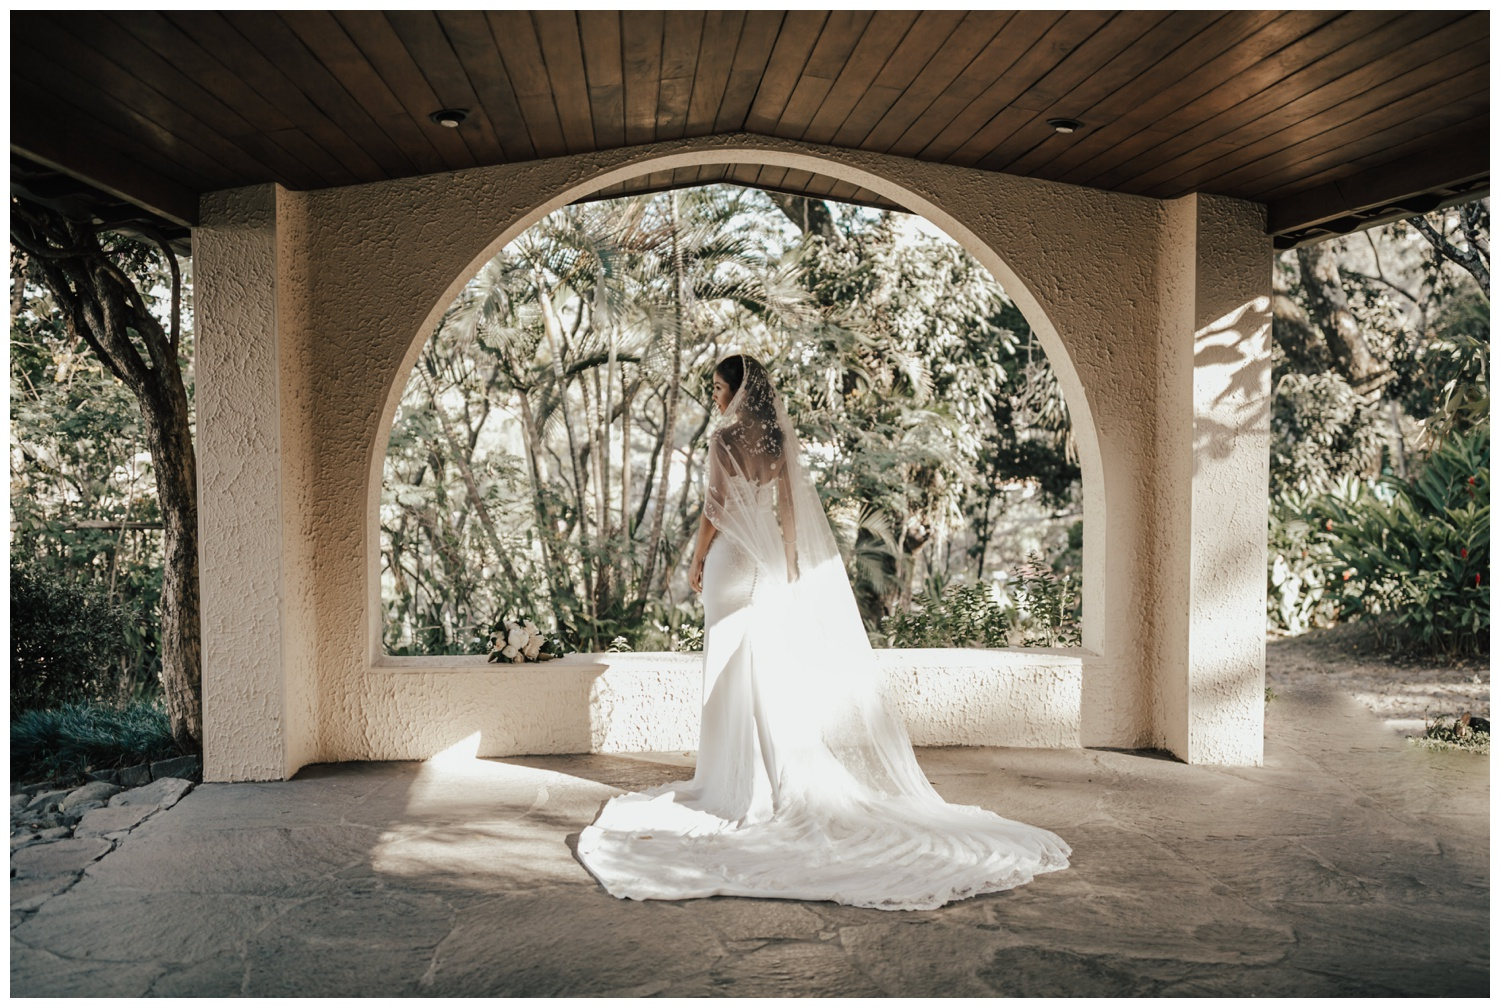 adriana_rivera_miranda_weddings_el_salvador_06.jpg